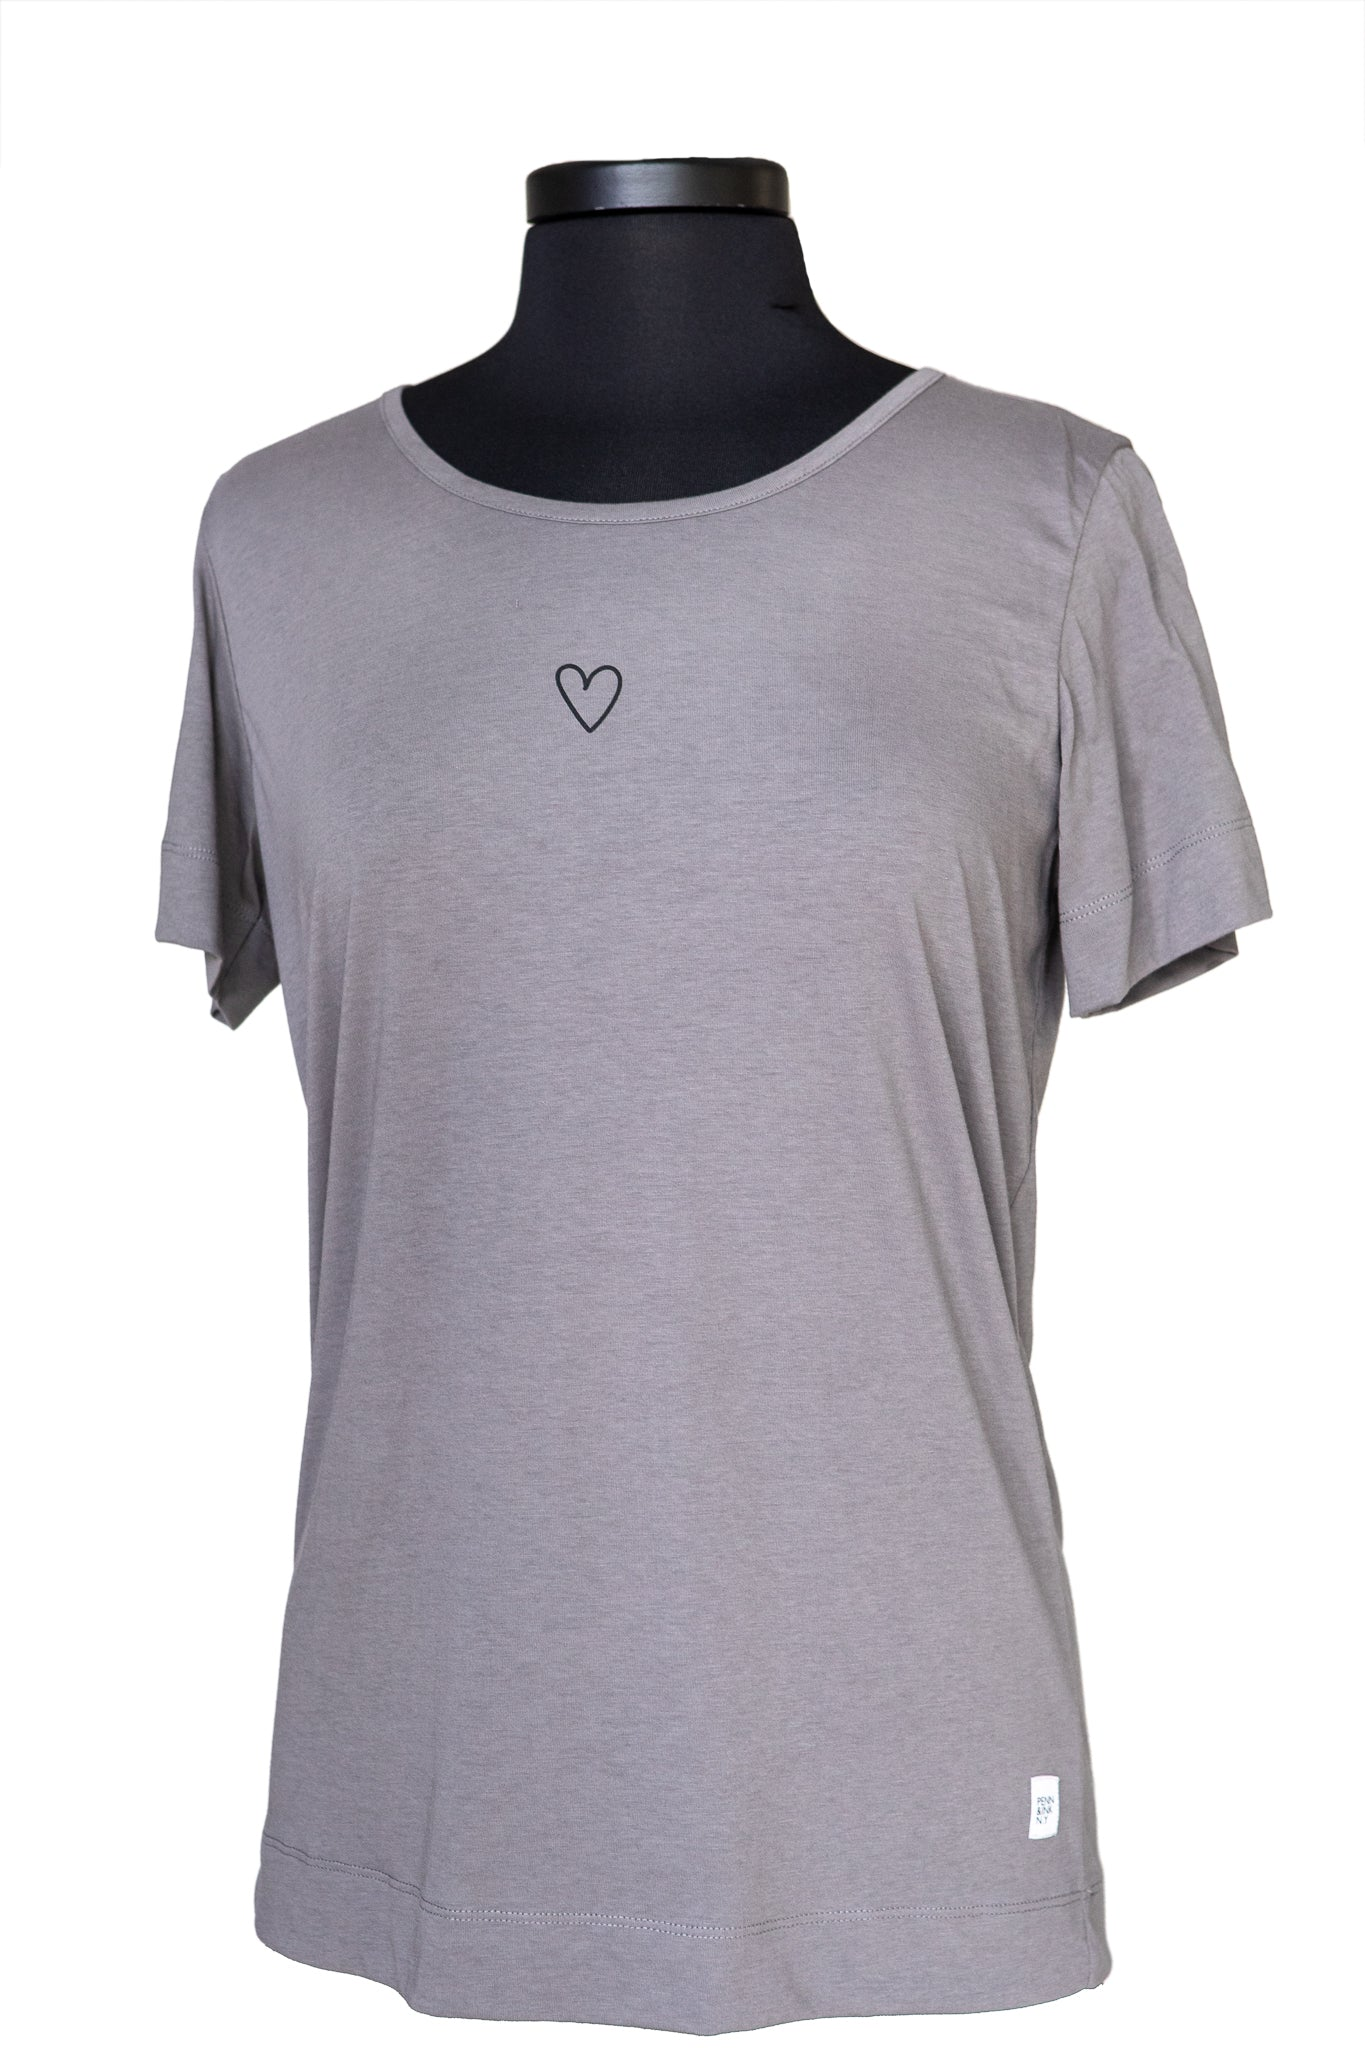 Penn & Ink Gray T-Shirt